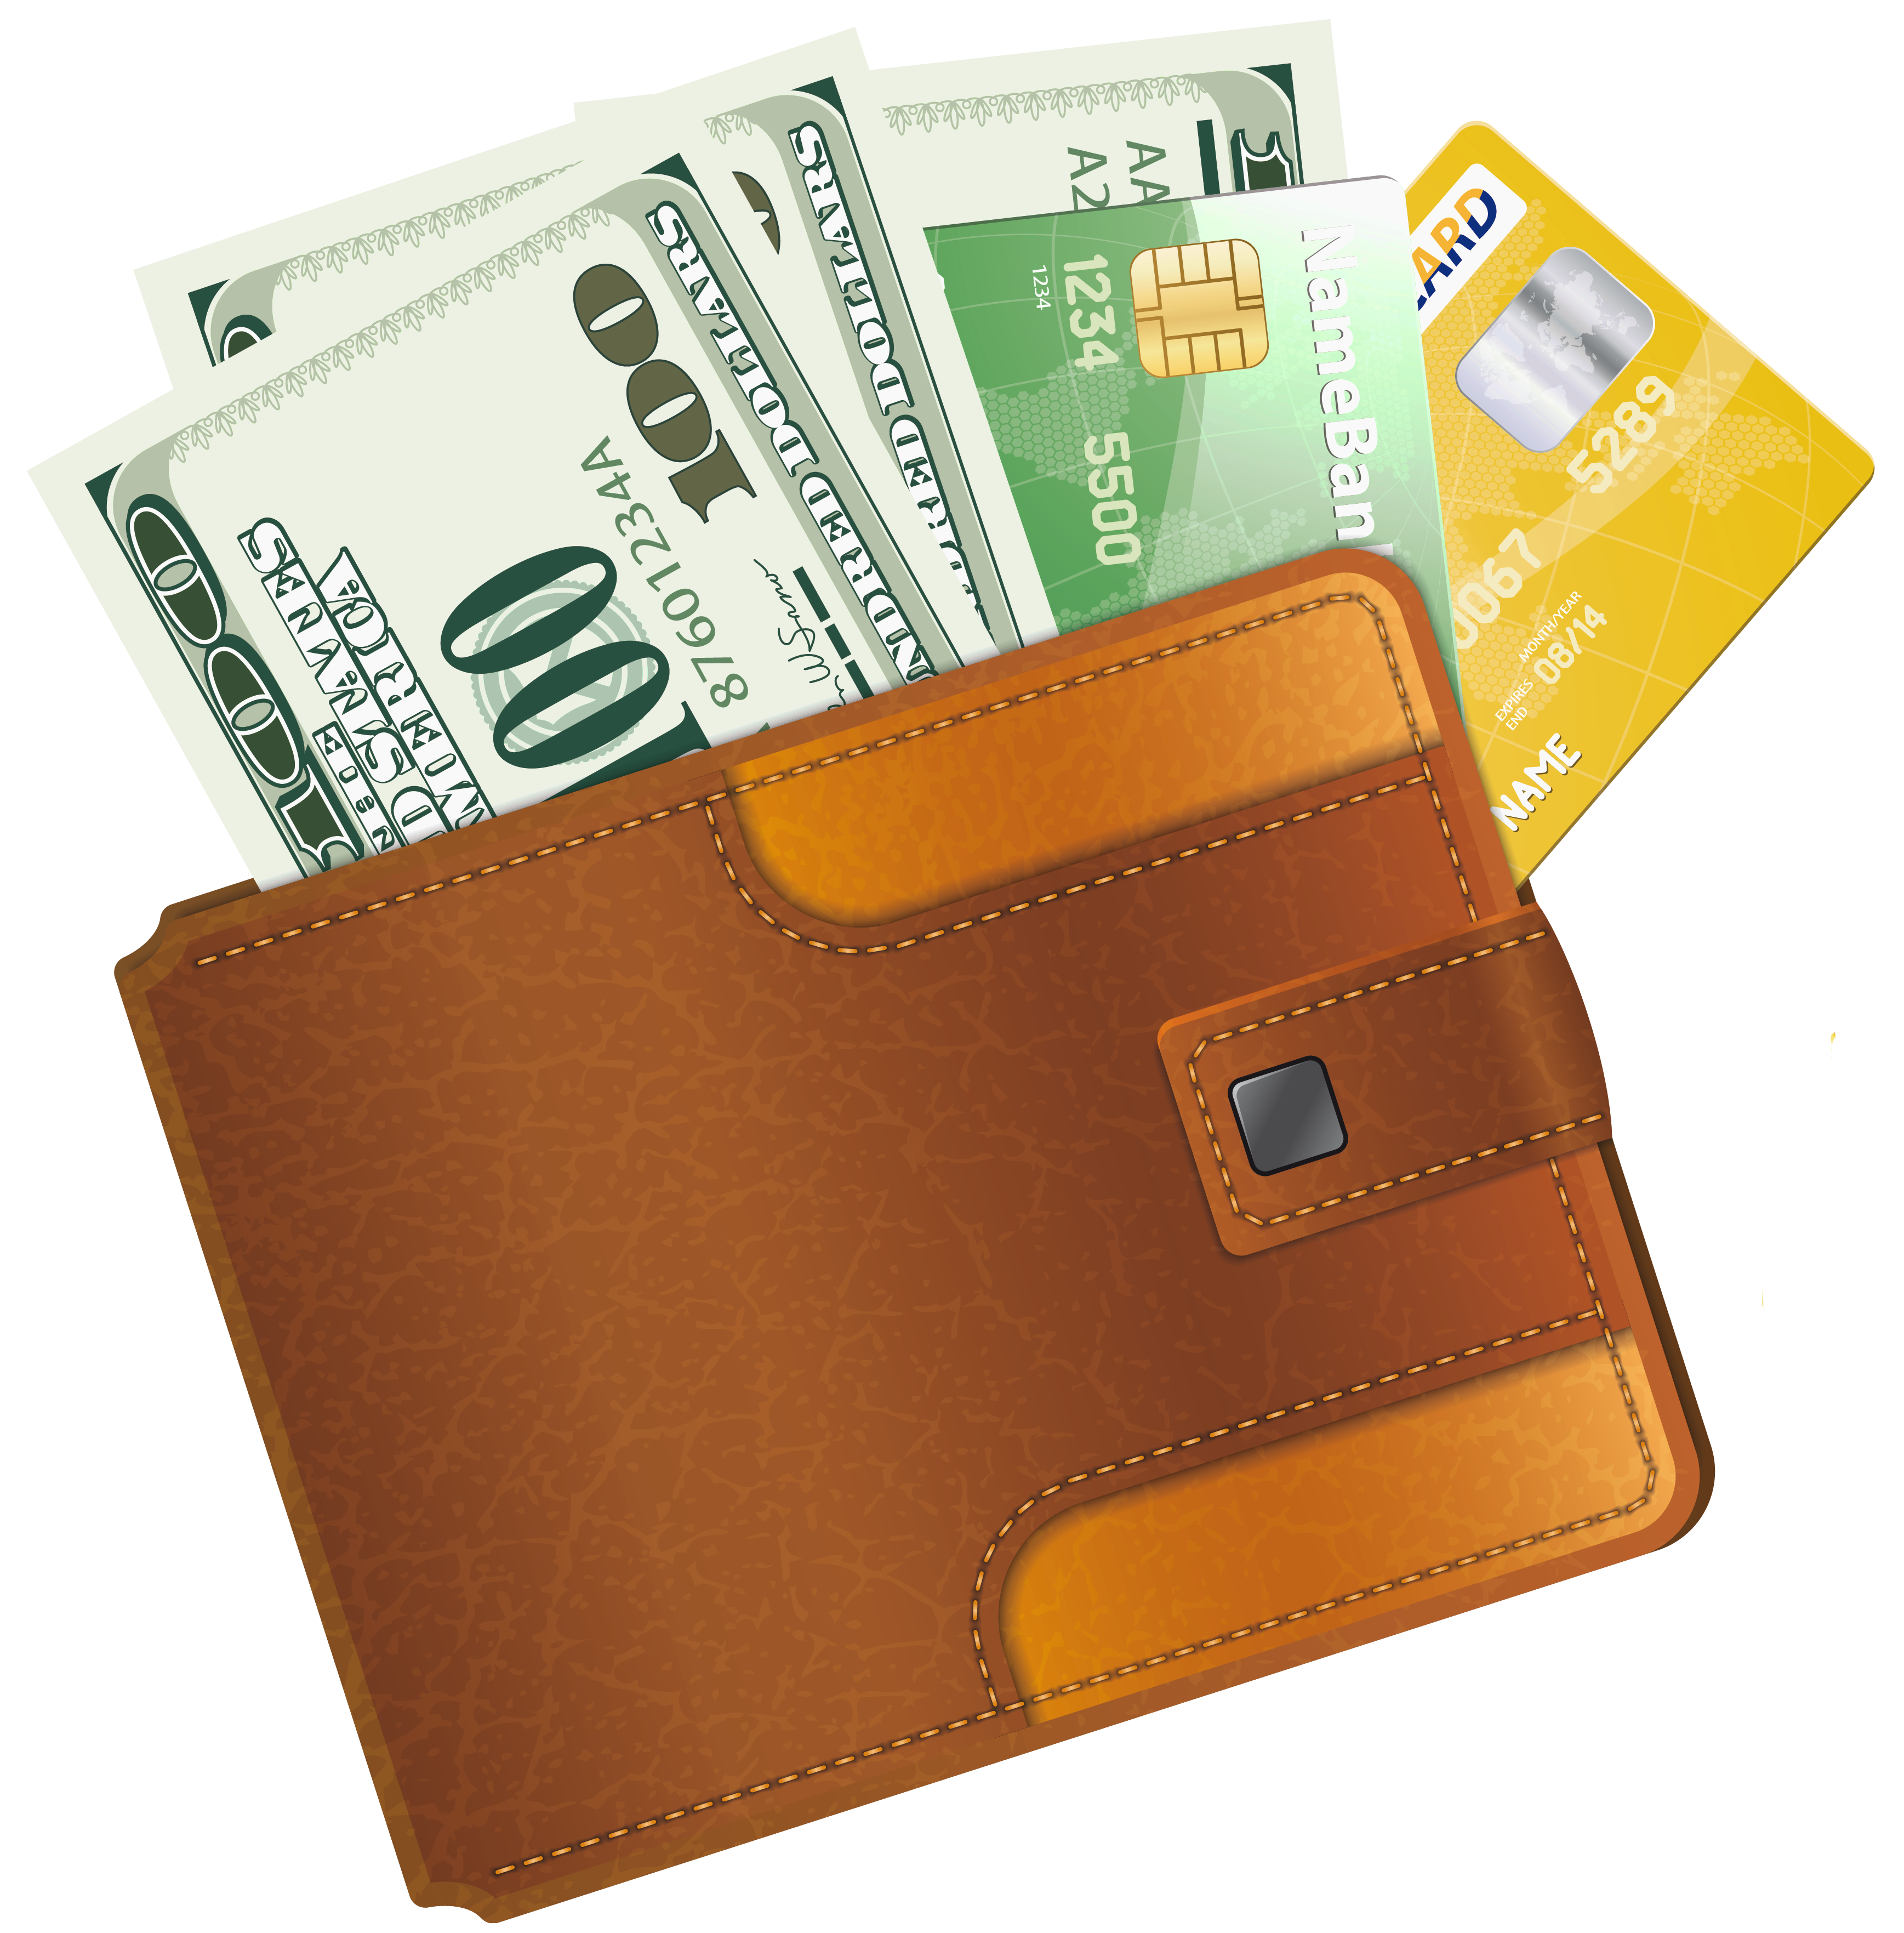 With credit cards png. Wallet clipart image download